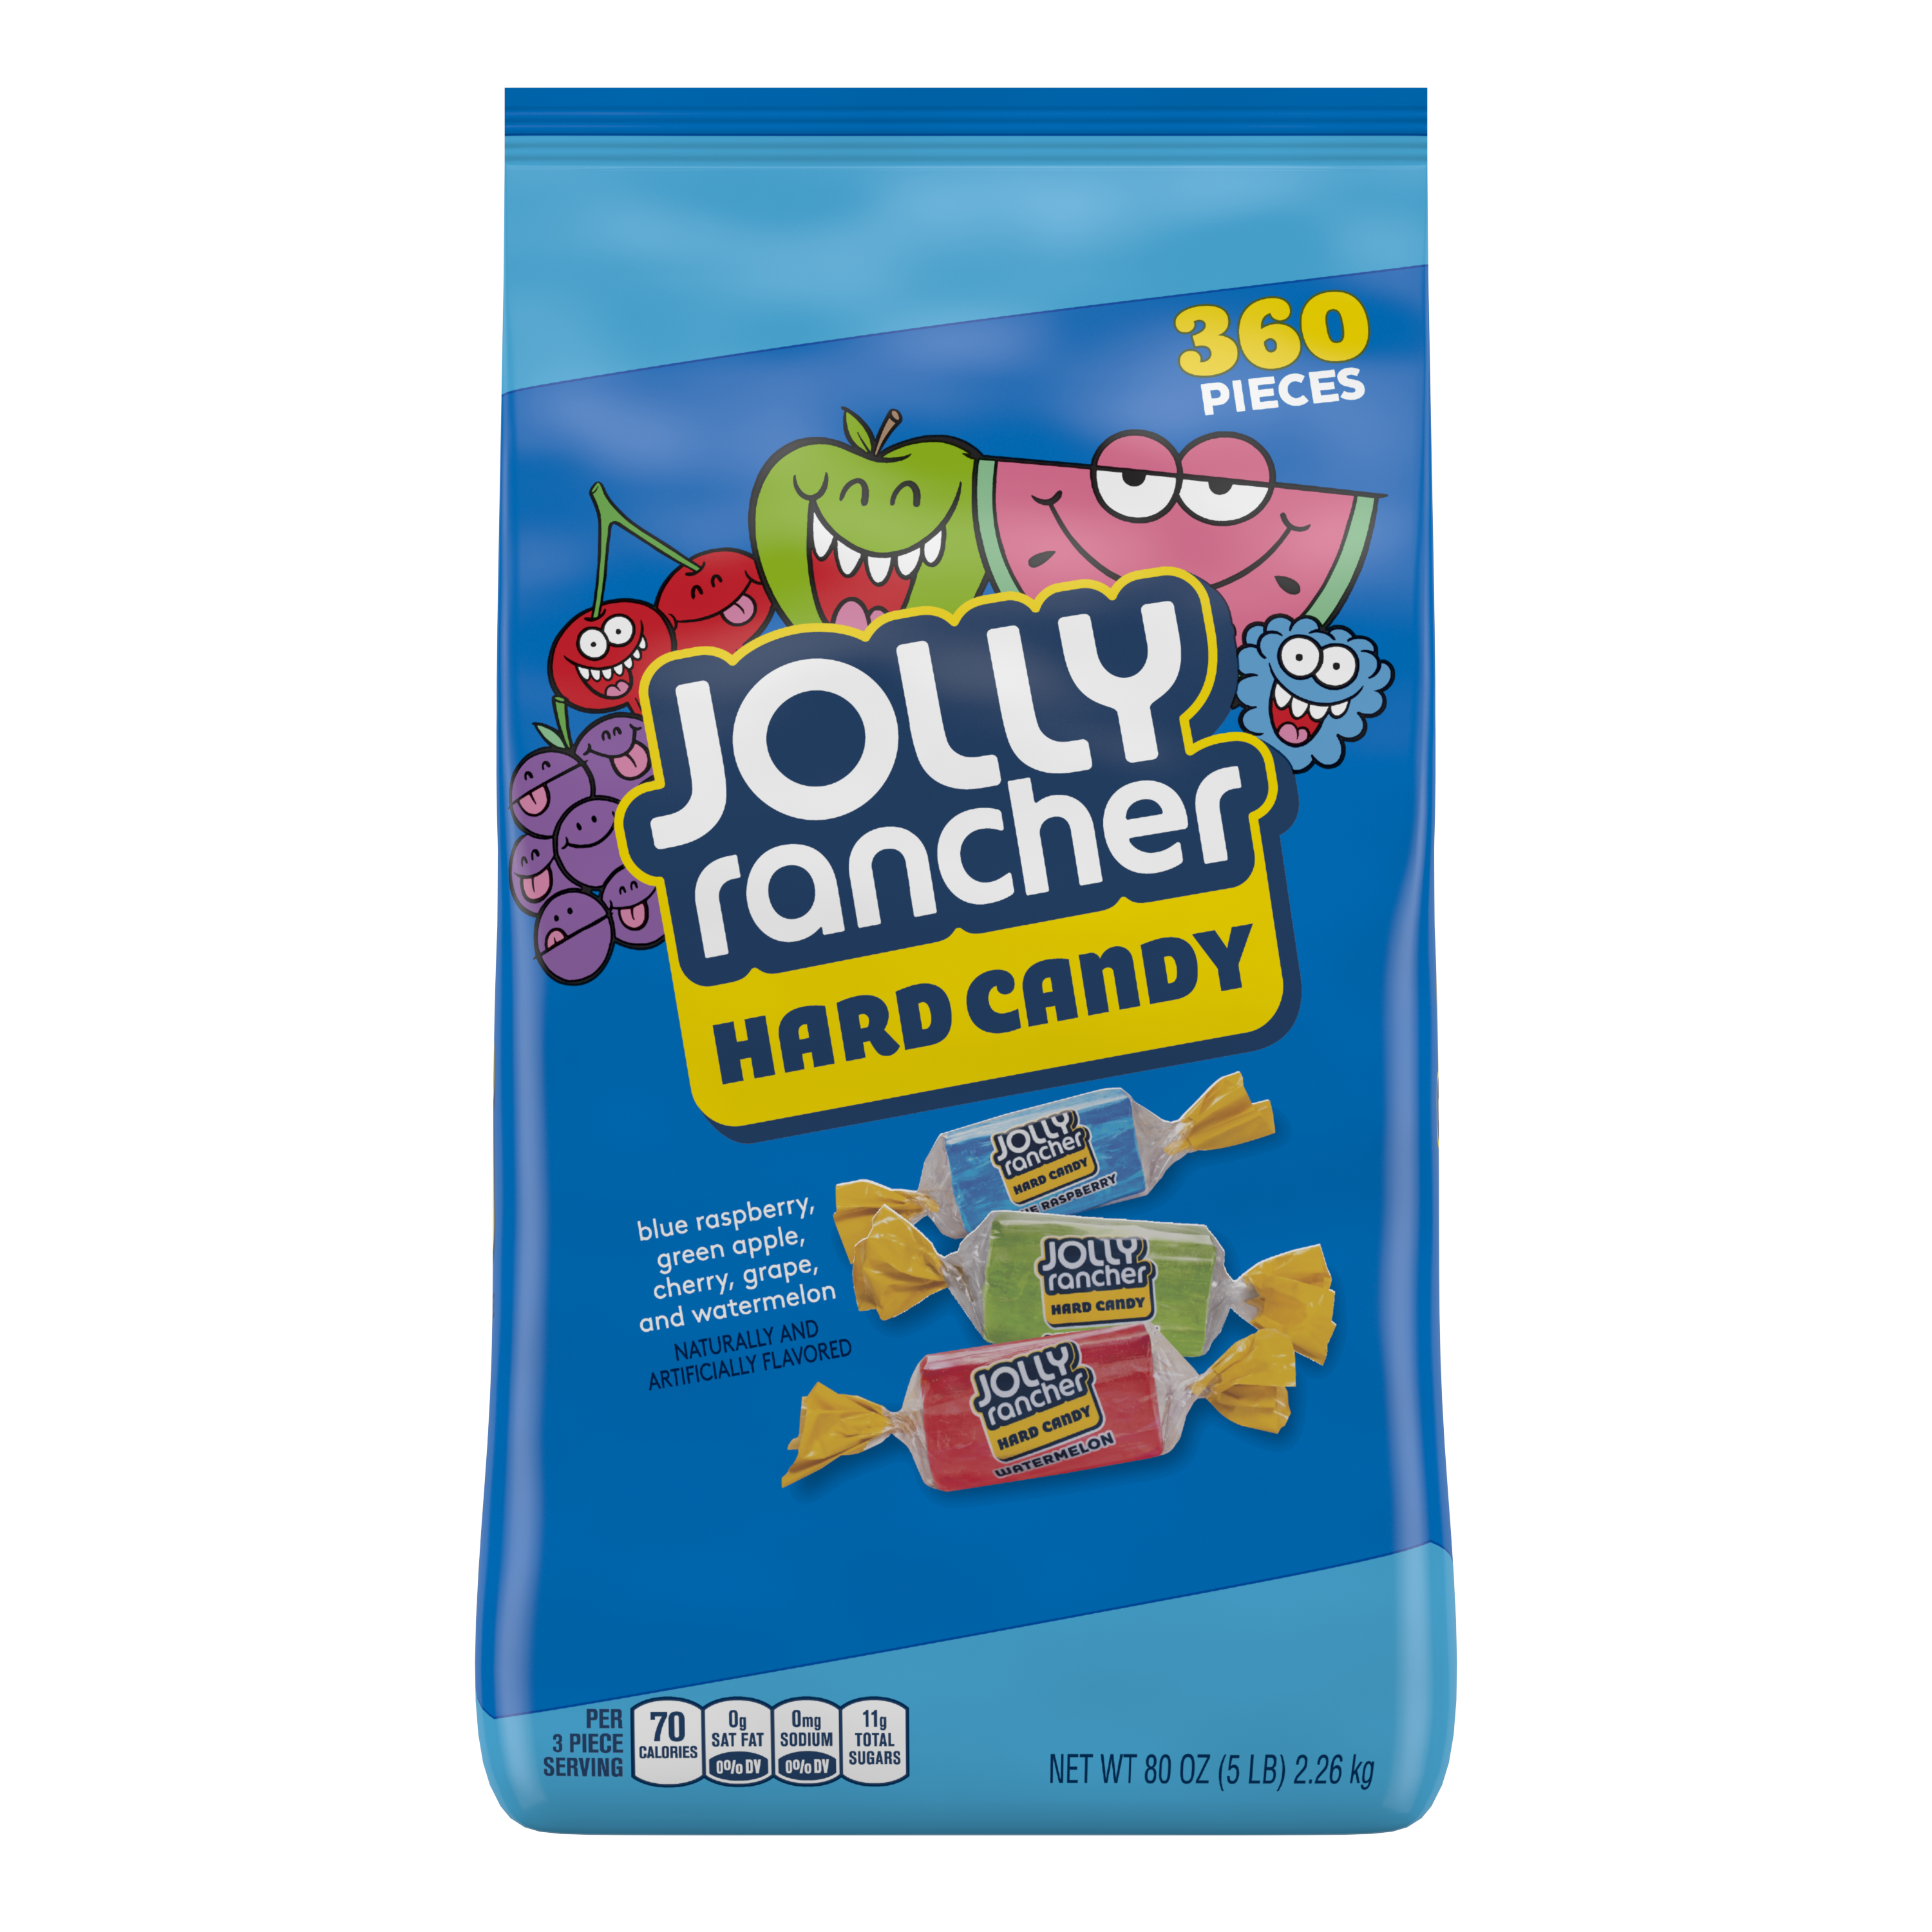 JOLLY RANCHER Original Flavors Hard Candy, 80 oz bag, 360 pieces - Front of Package